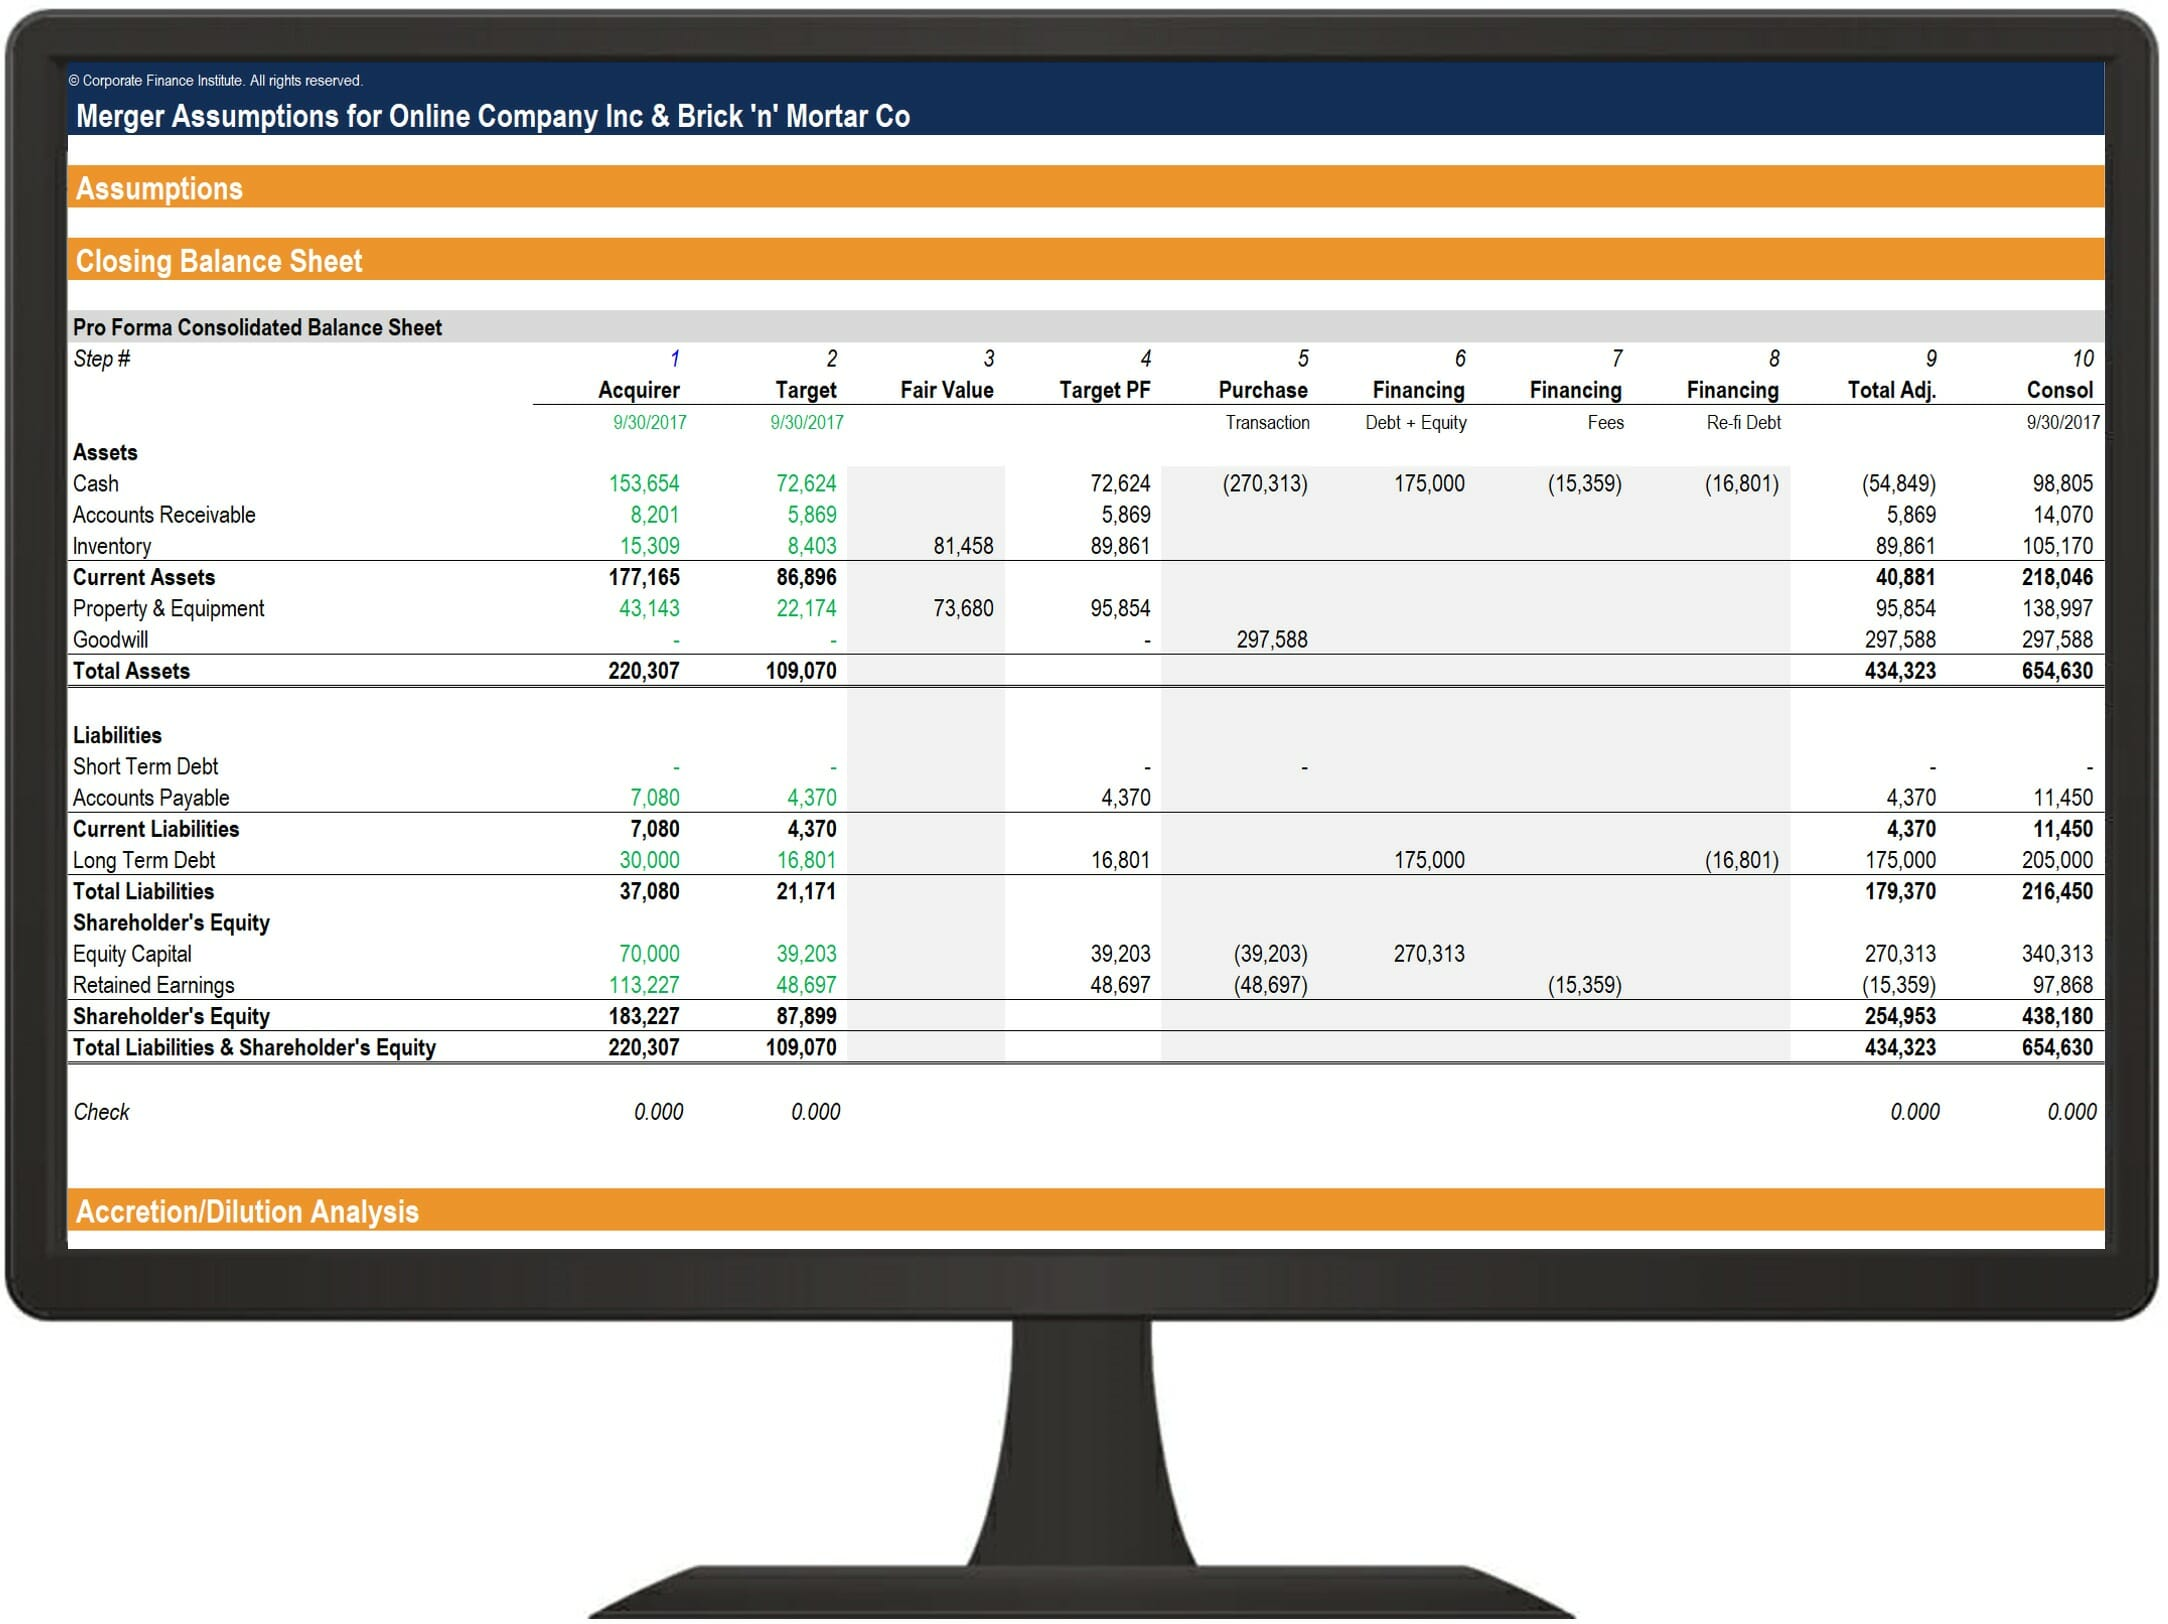 M&A Model - advanced type of financial modeling